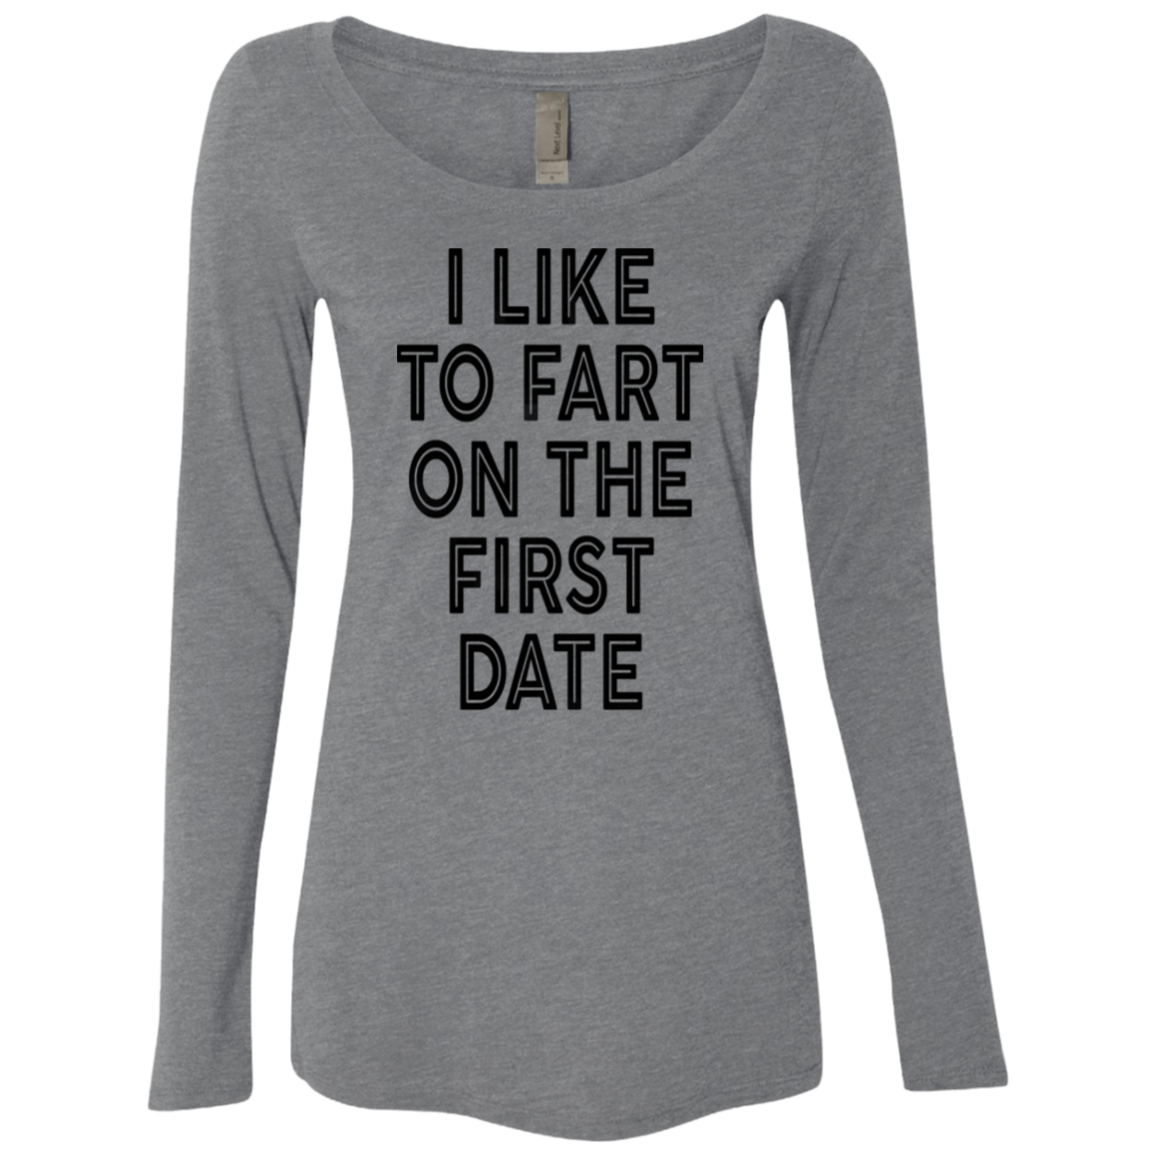 I Like To Fart On The First Date Women's Long Sleeve Tee